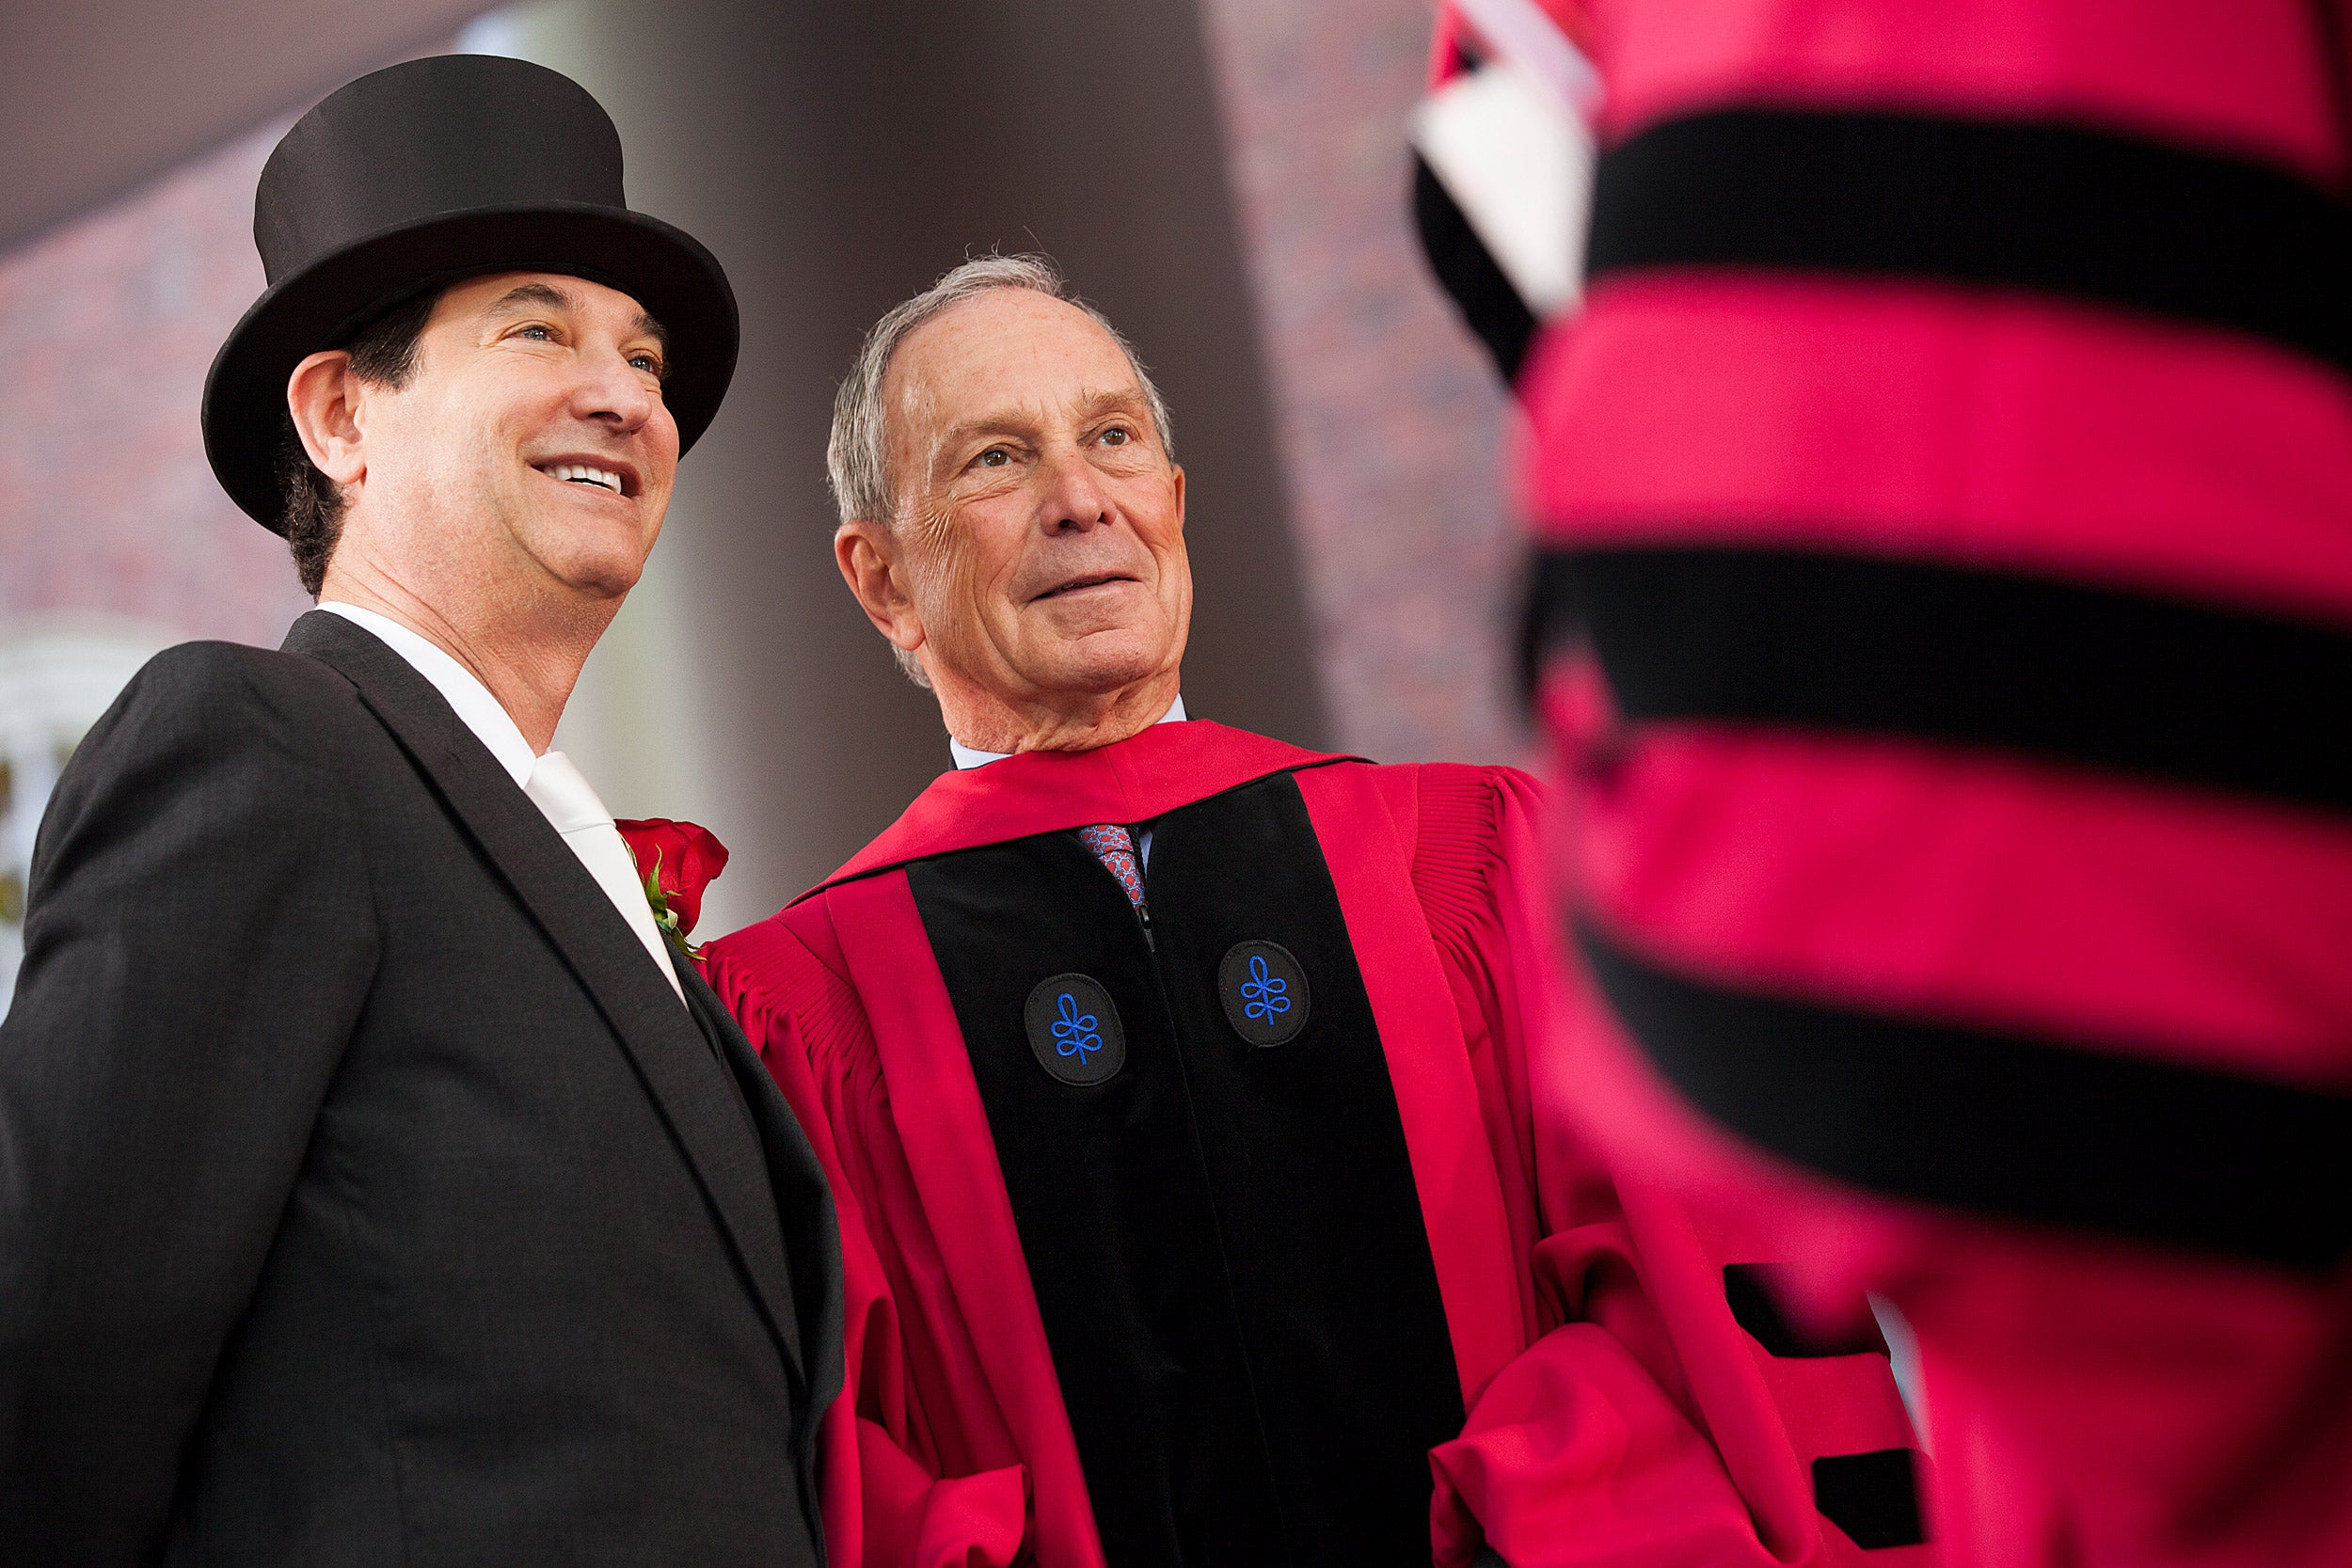 James Breyer (left) and Michael Bloomberg